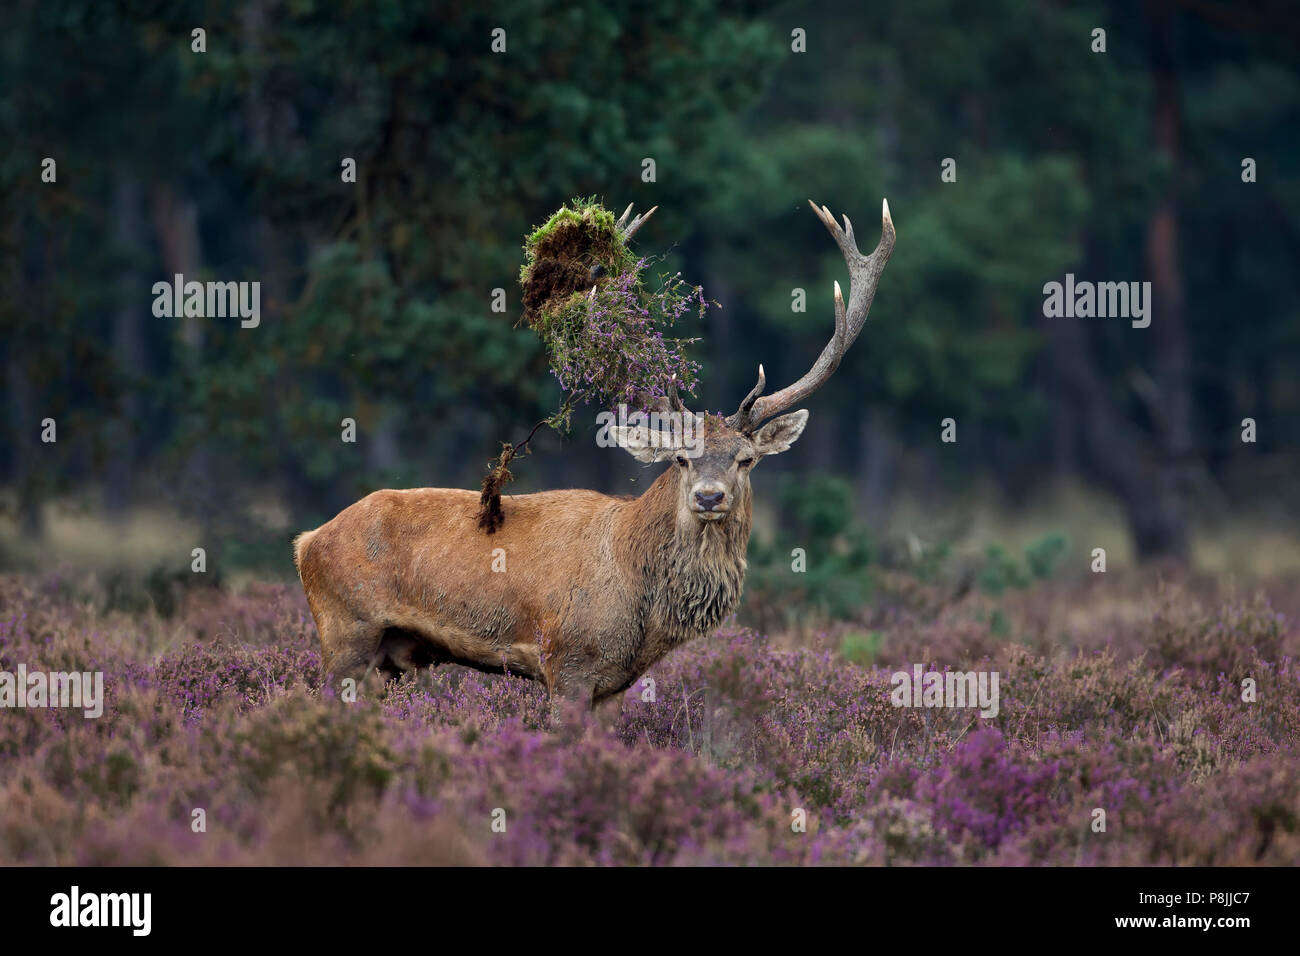 Red deer stag with vegetation in its antlers Stock Photo